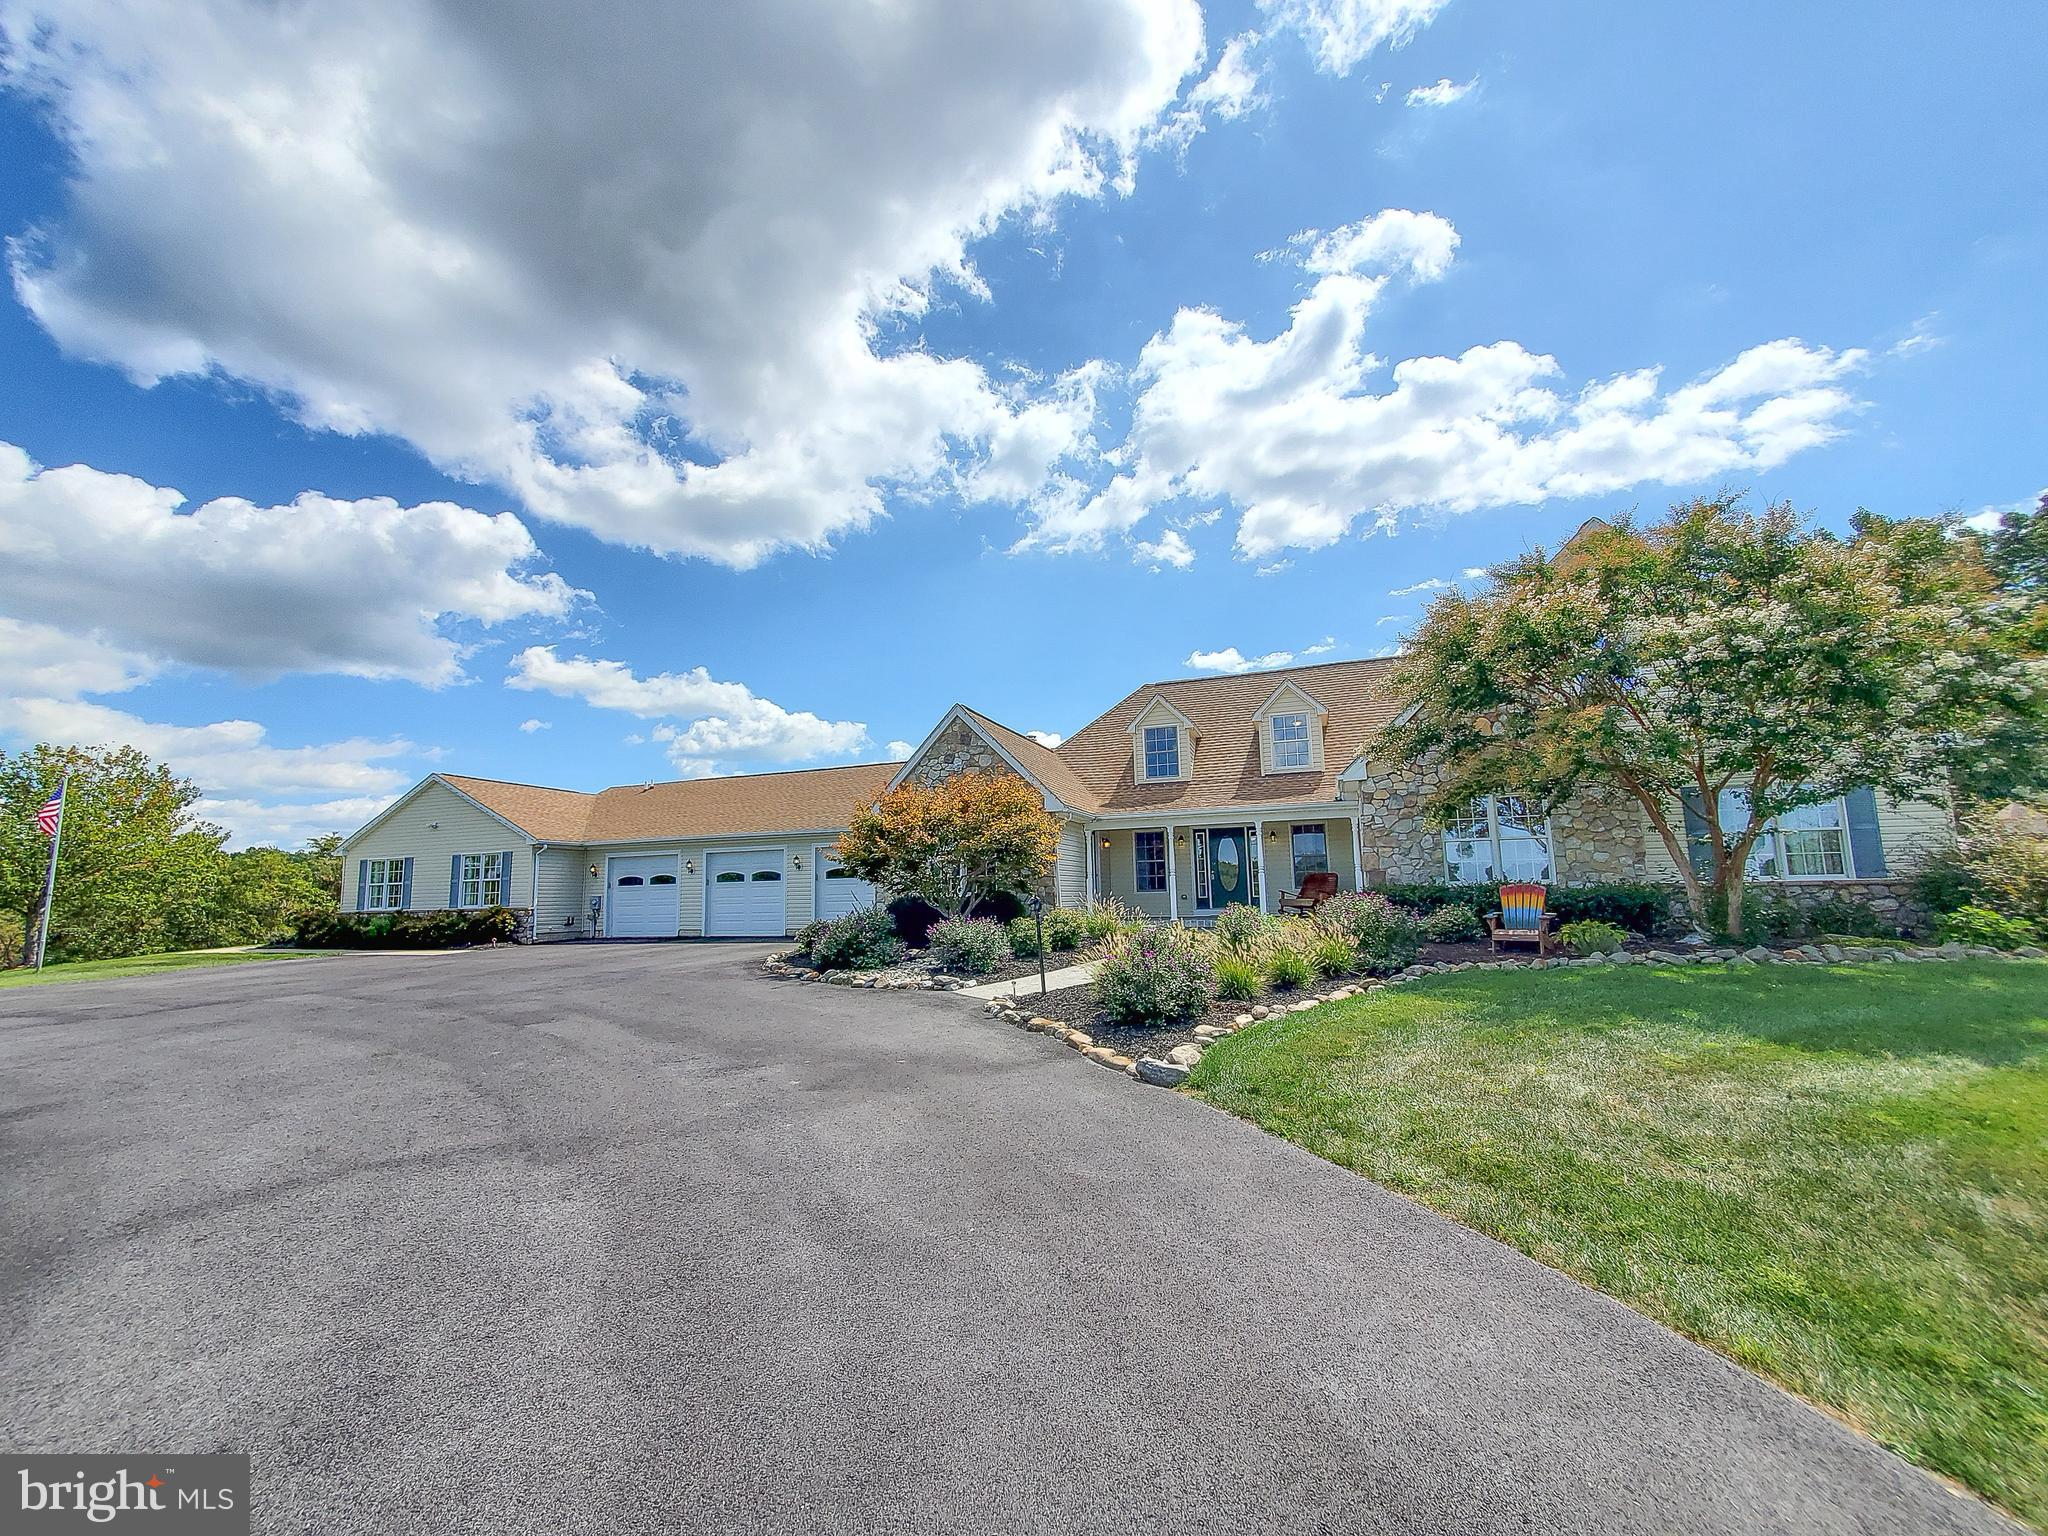 7960 TALBOT RUN ROAD, MOUNT AIRY, MD 21771